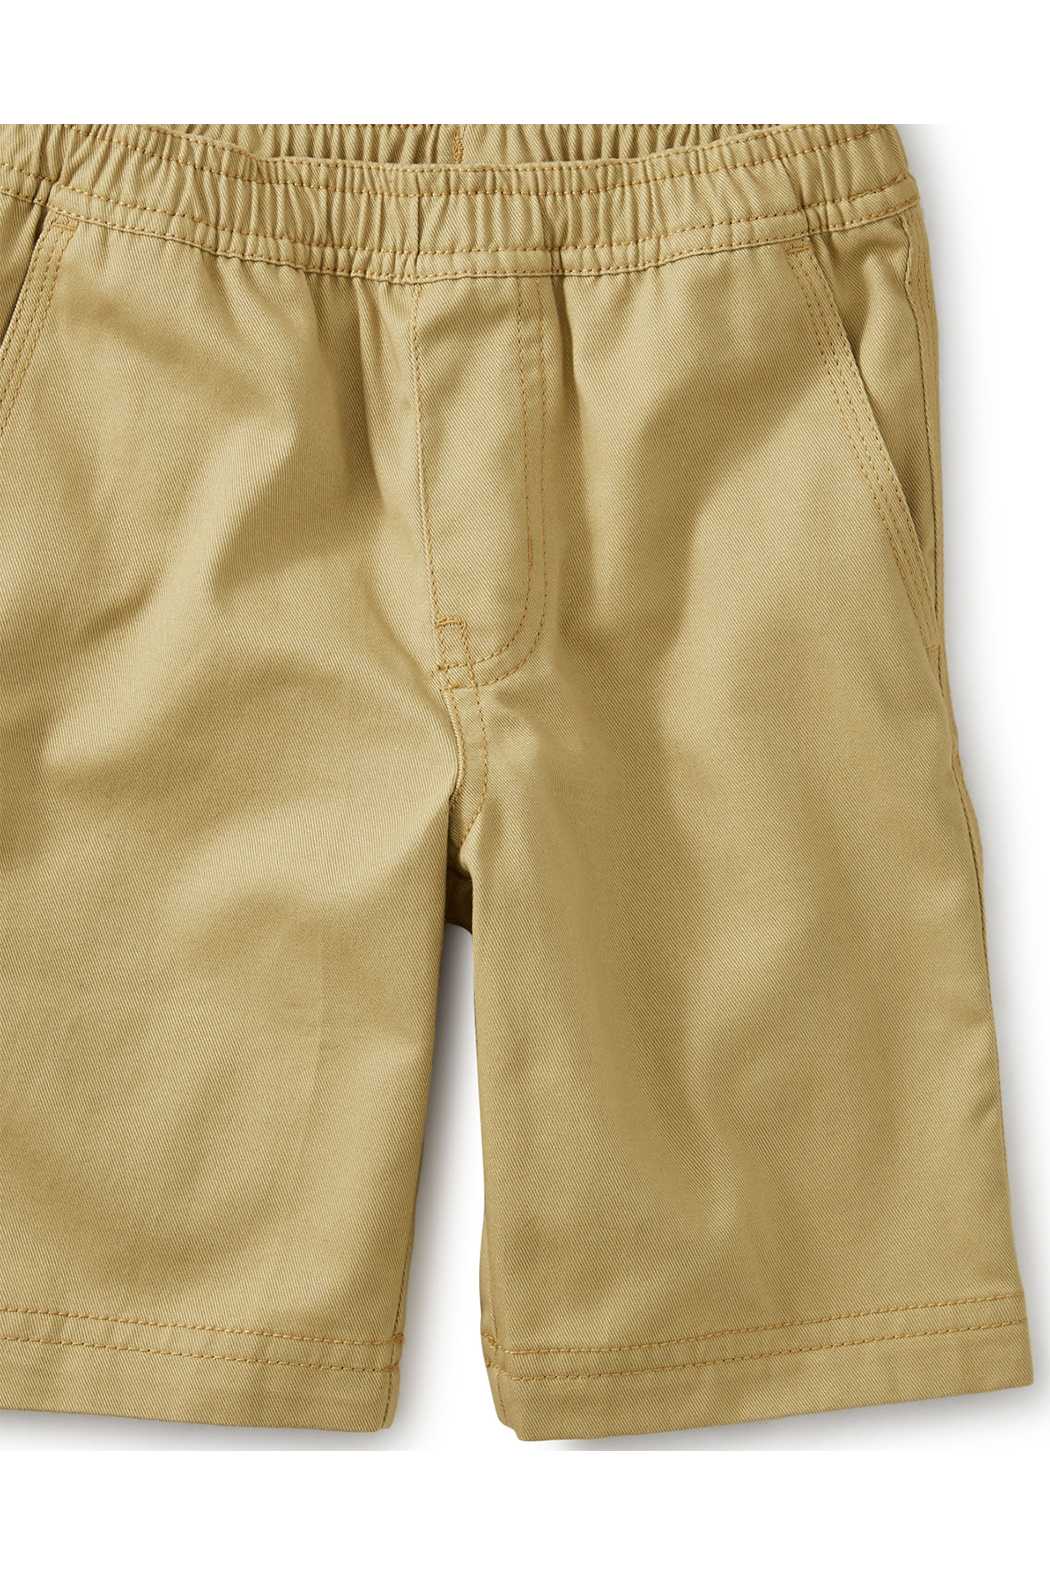 Tea Collection Easy Does It Twill Shorts - Front Full Image